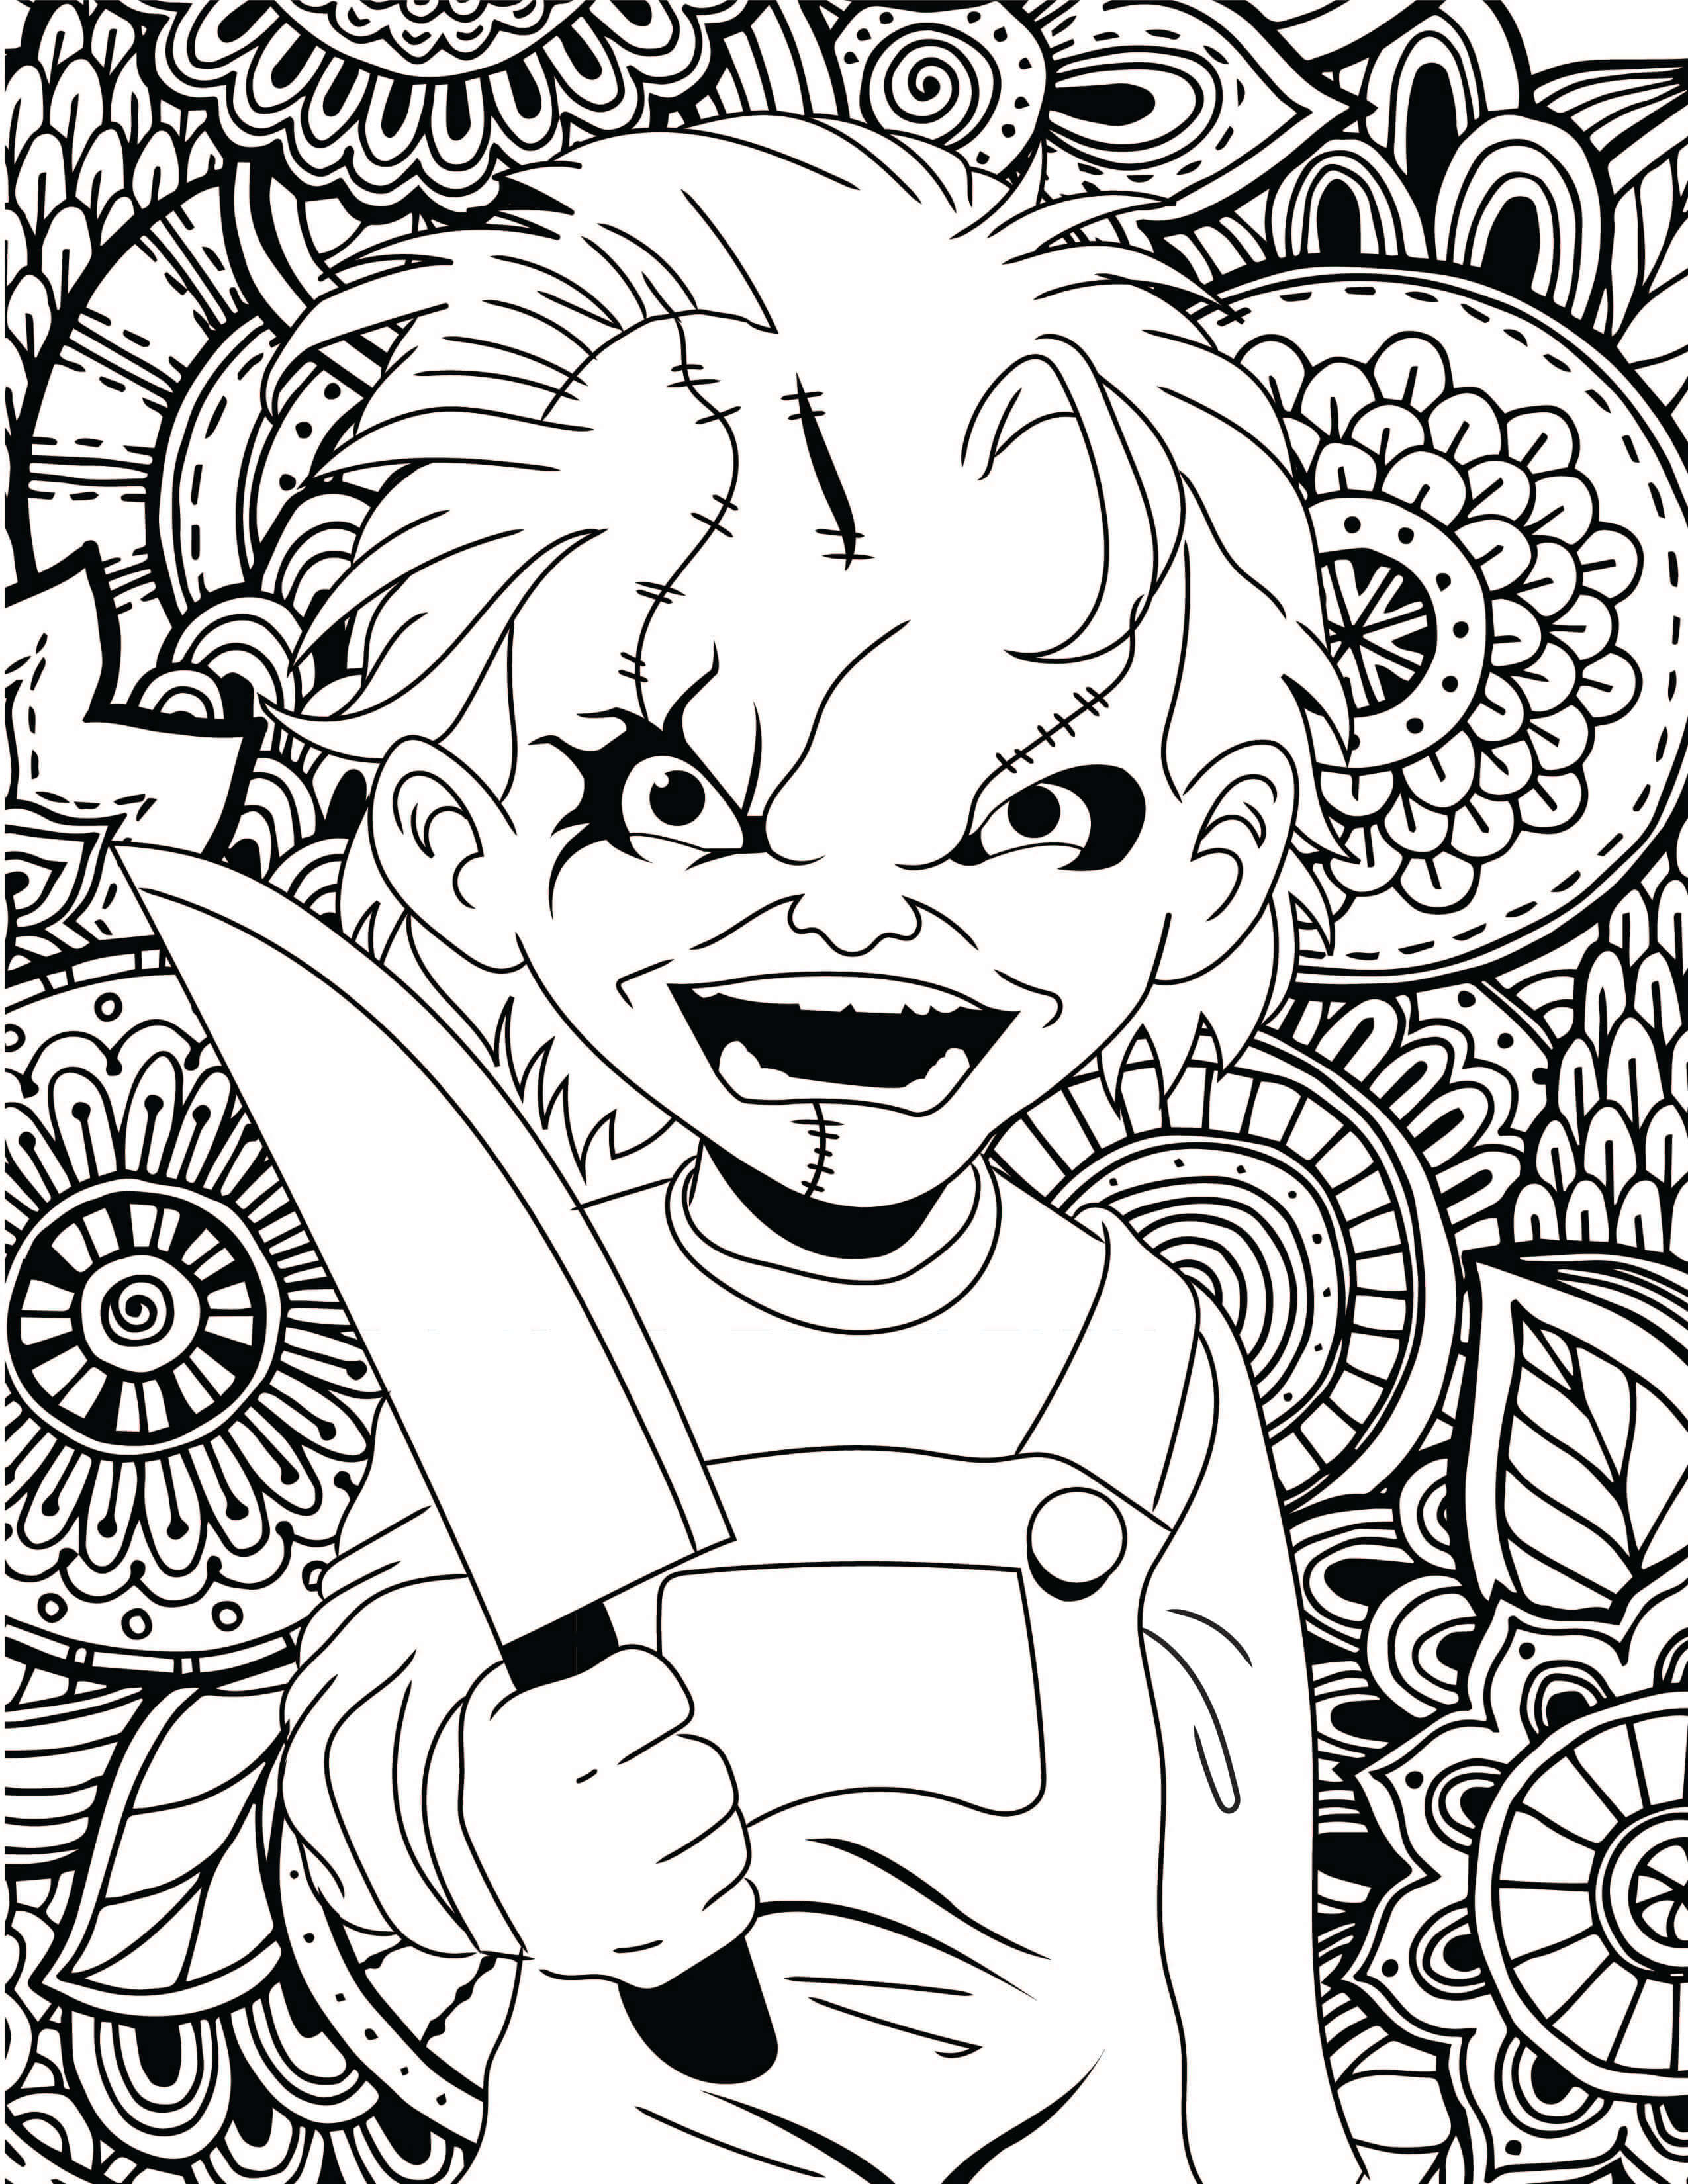 2550x3300 Horror Movies Printable Coloring Pages Costume Supercenter Blog